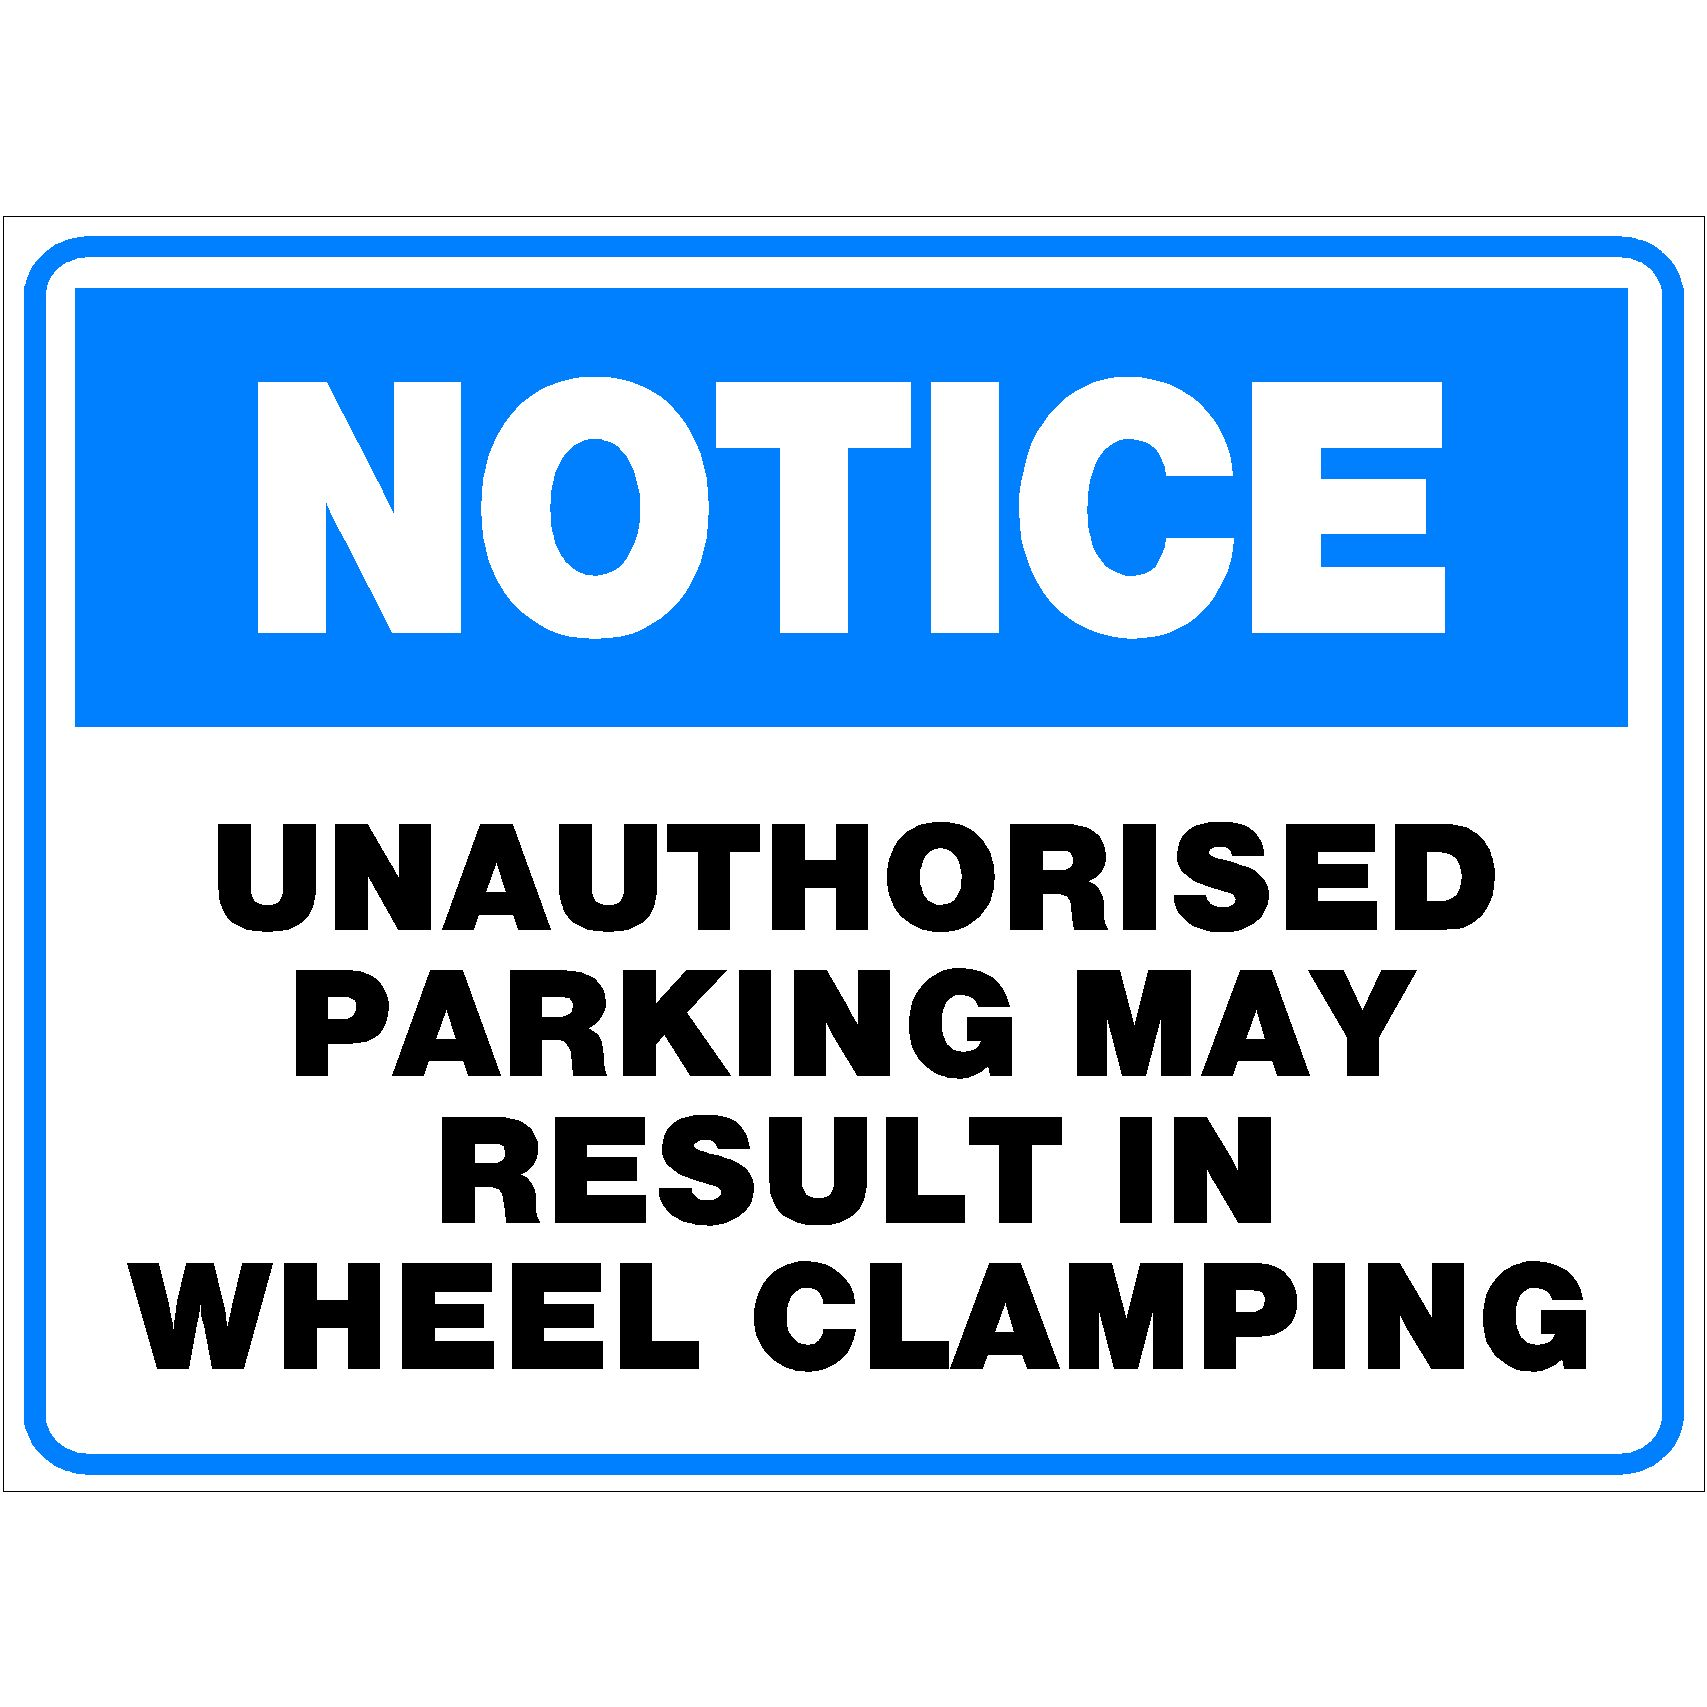 Notice Unauthorised Parking May Result In Wheel Clamping